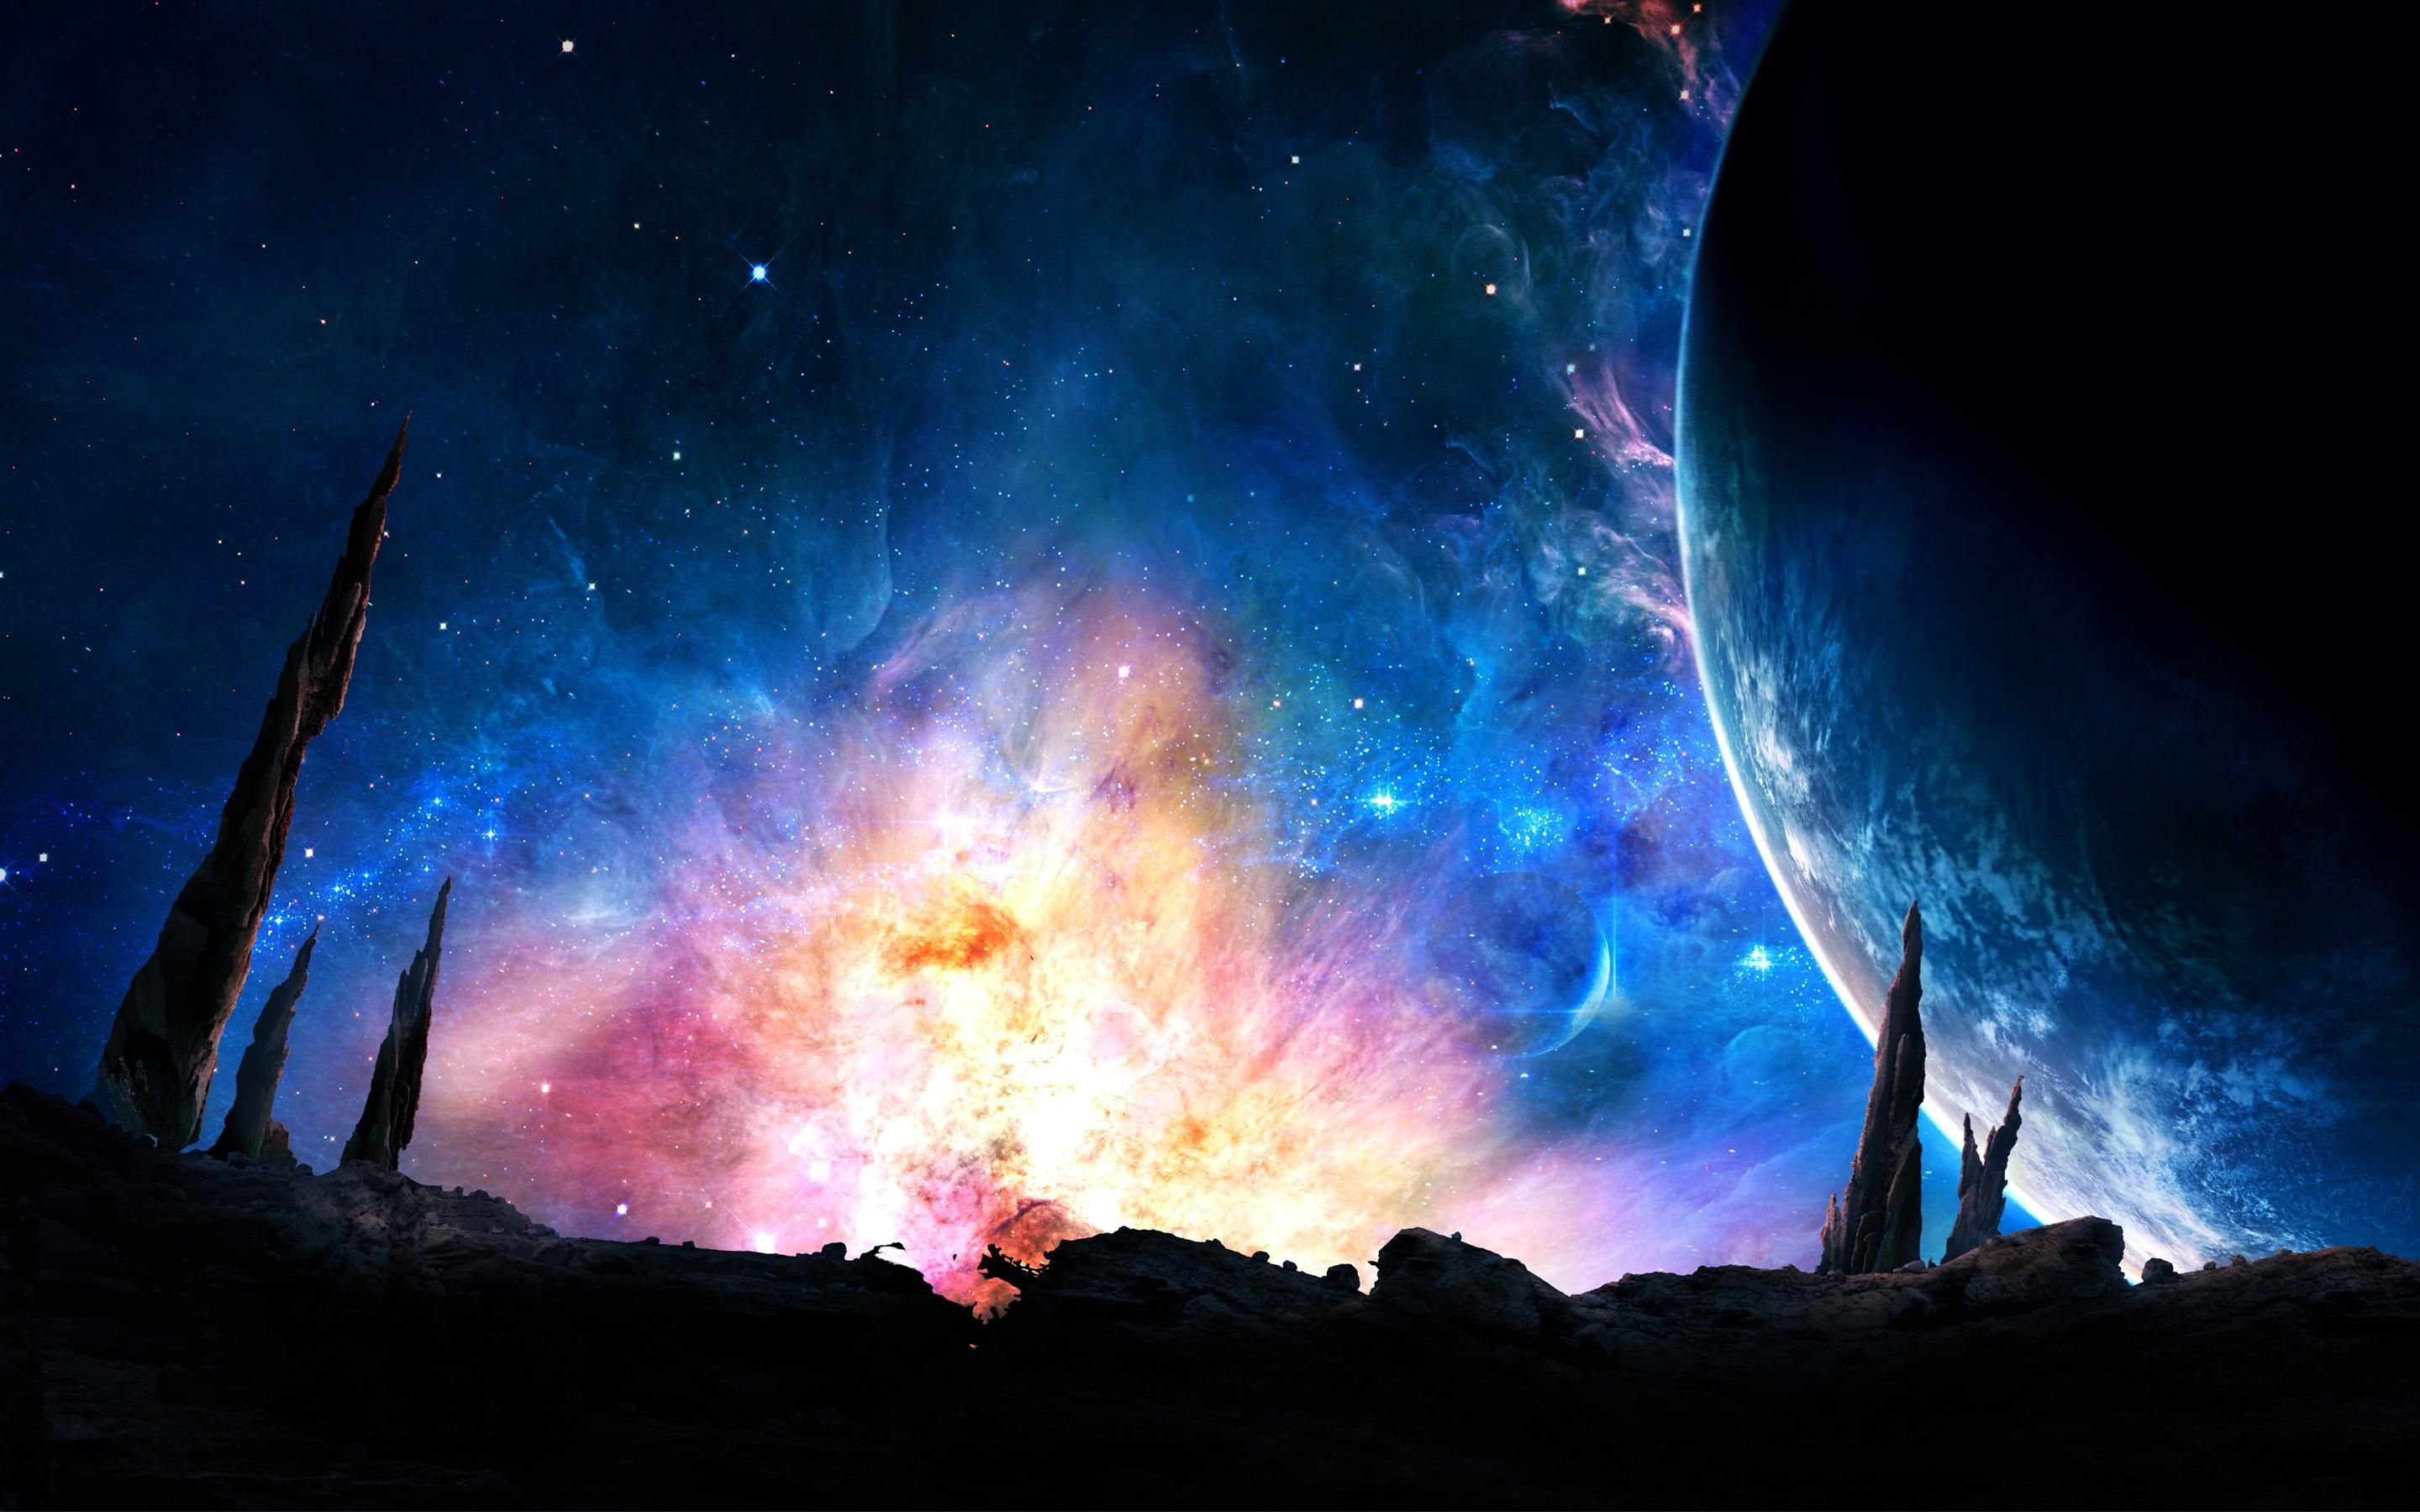 Galaxy Space Live Wallpapers Hd By Narendra Doriya: Guardians Of The Galaxy Sky - Google Search